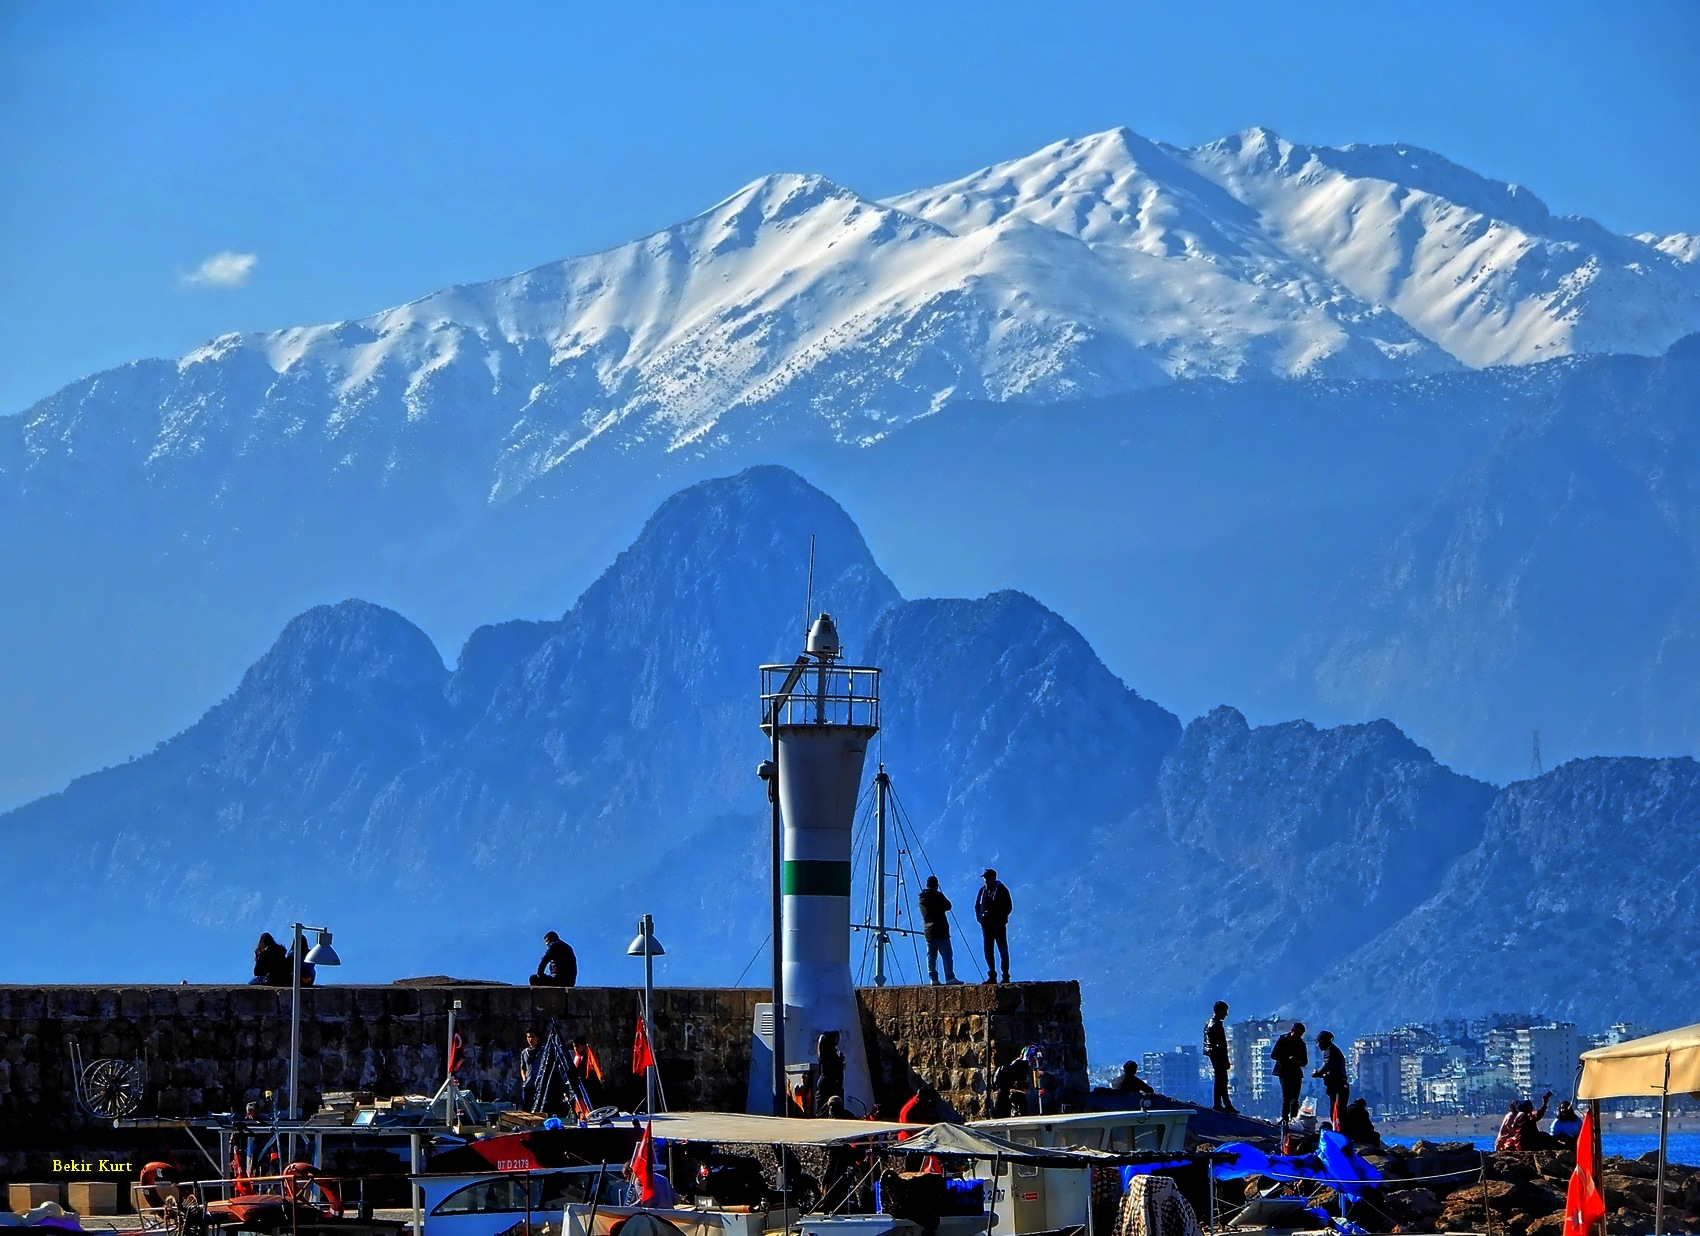 The View To Bey Mountains by Bekir Kurt